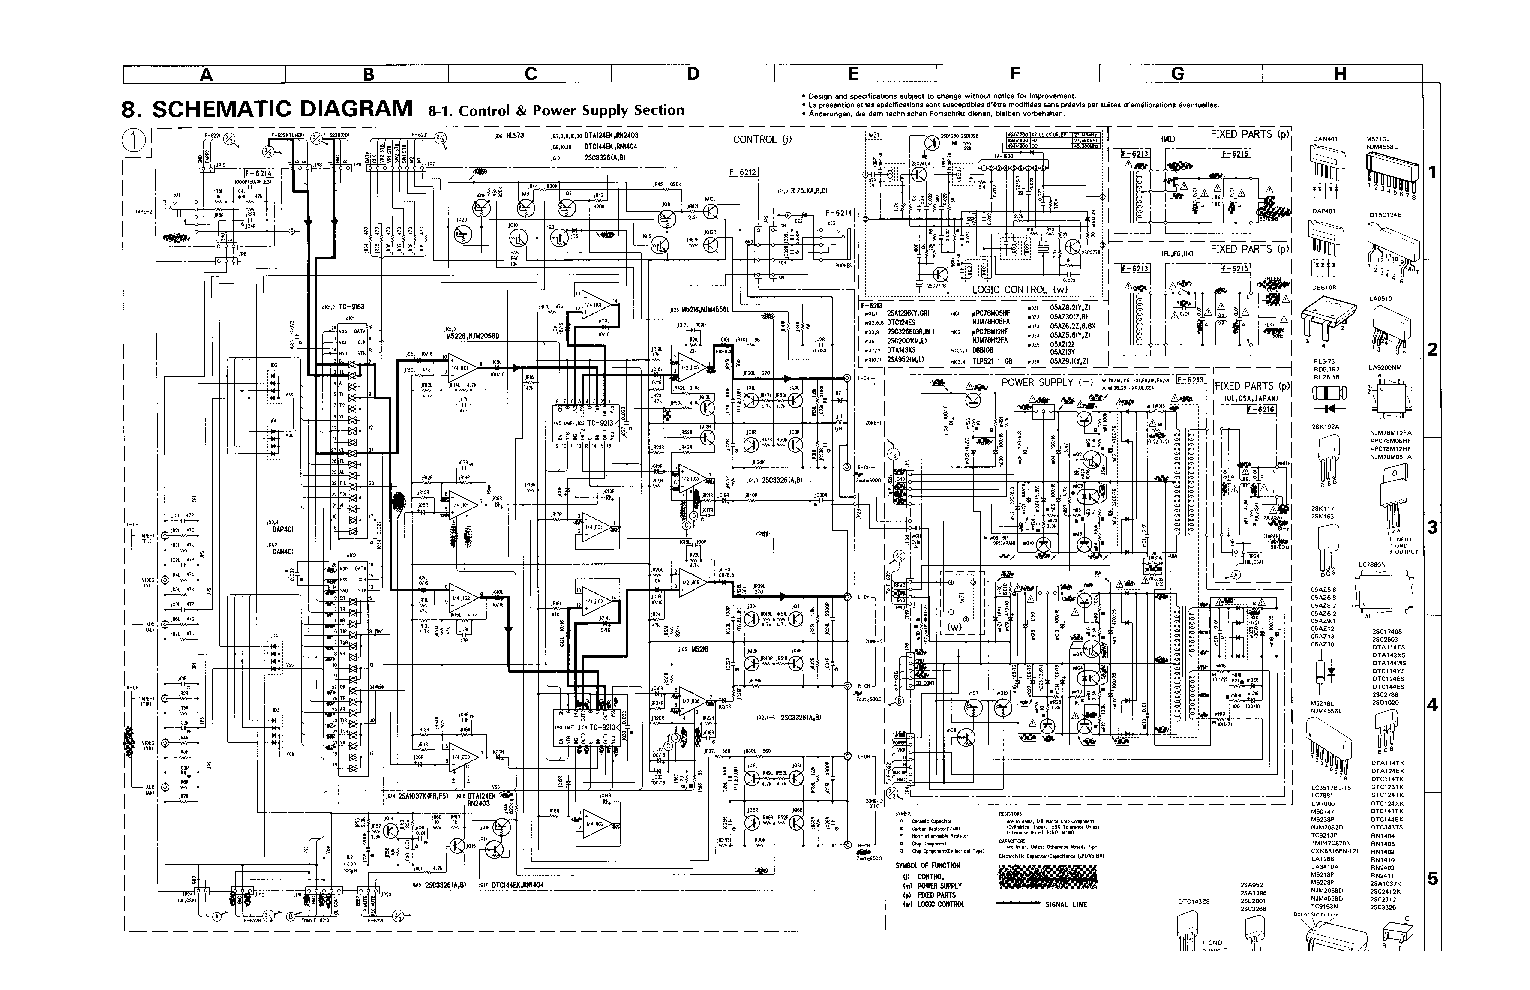 Bose T20 Wiring Diagram Not Lossing Sigtronics Acoustimass Ht Library Rh 78 Skriptoase De Spa 400 Mazda Amp